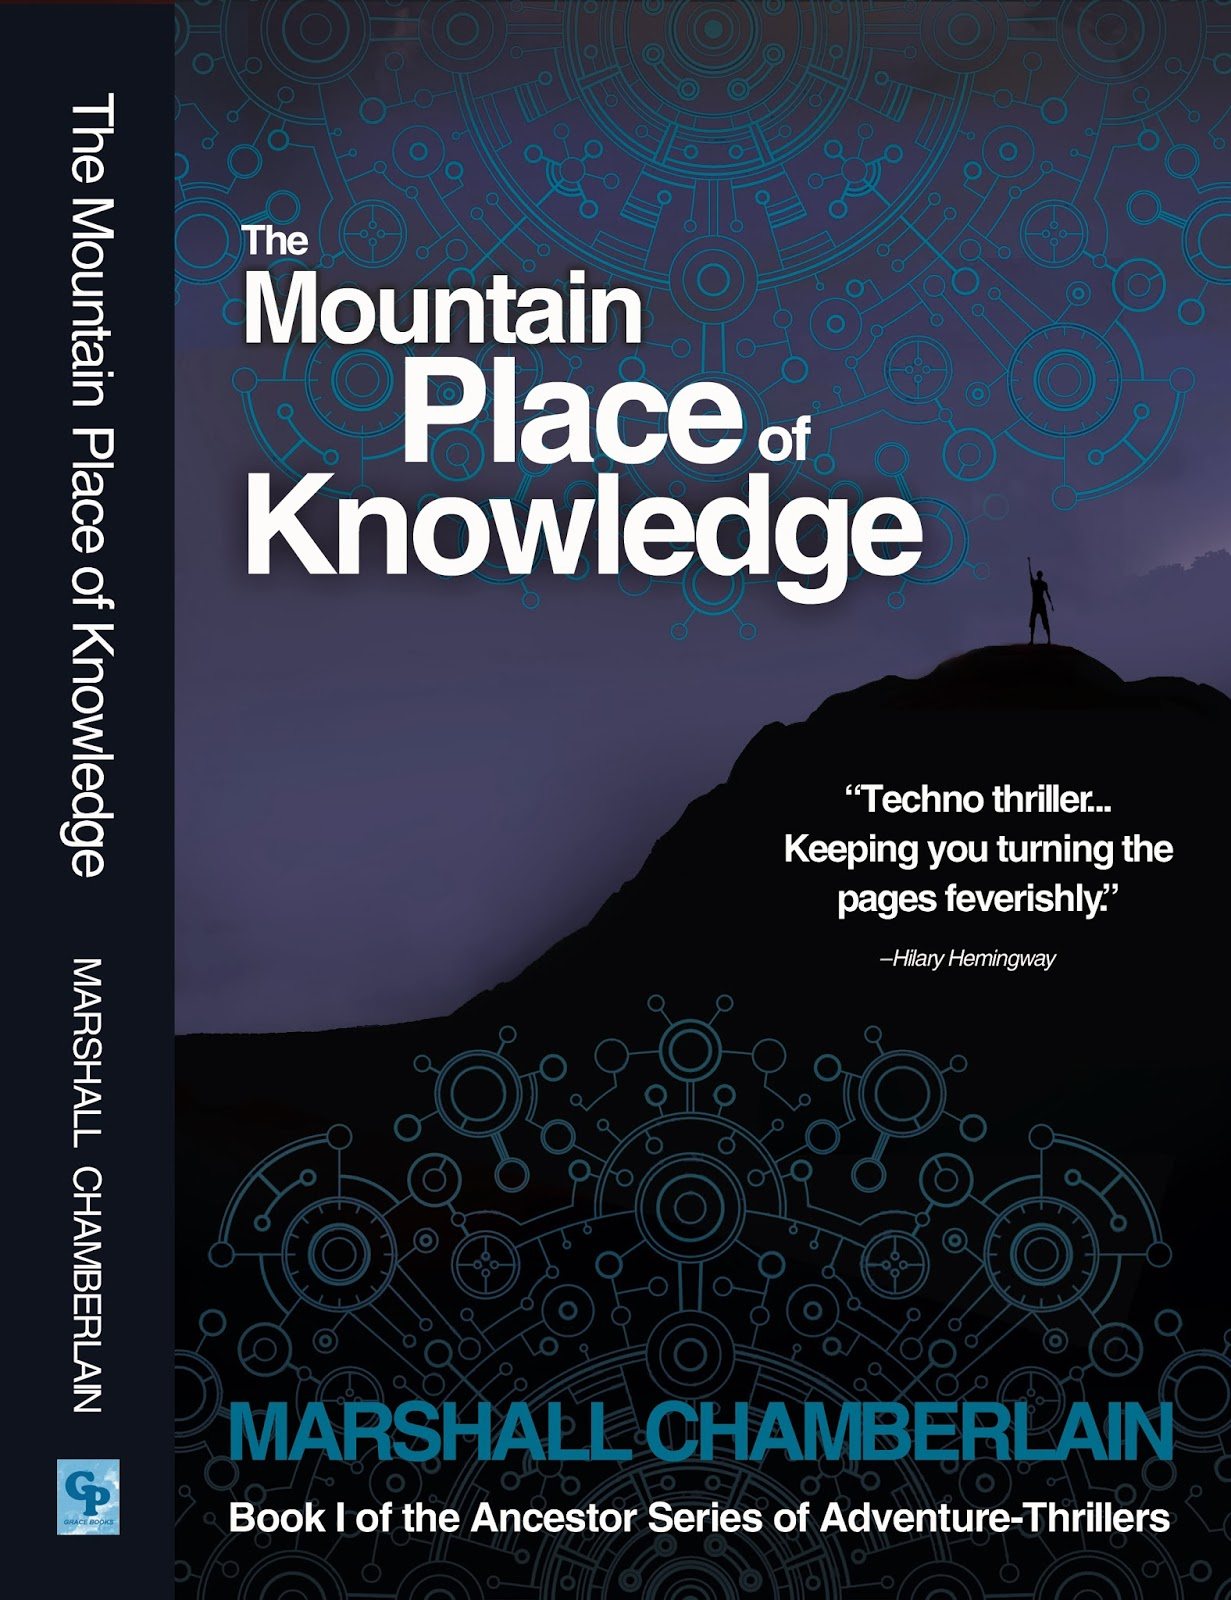 The Mountain Place of Knowledge Amazon Sales Page